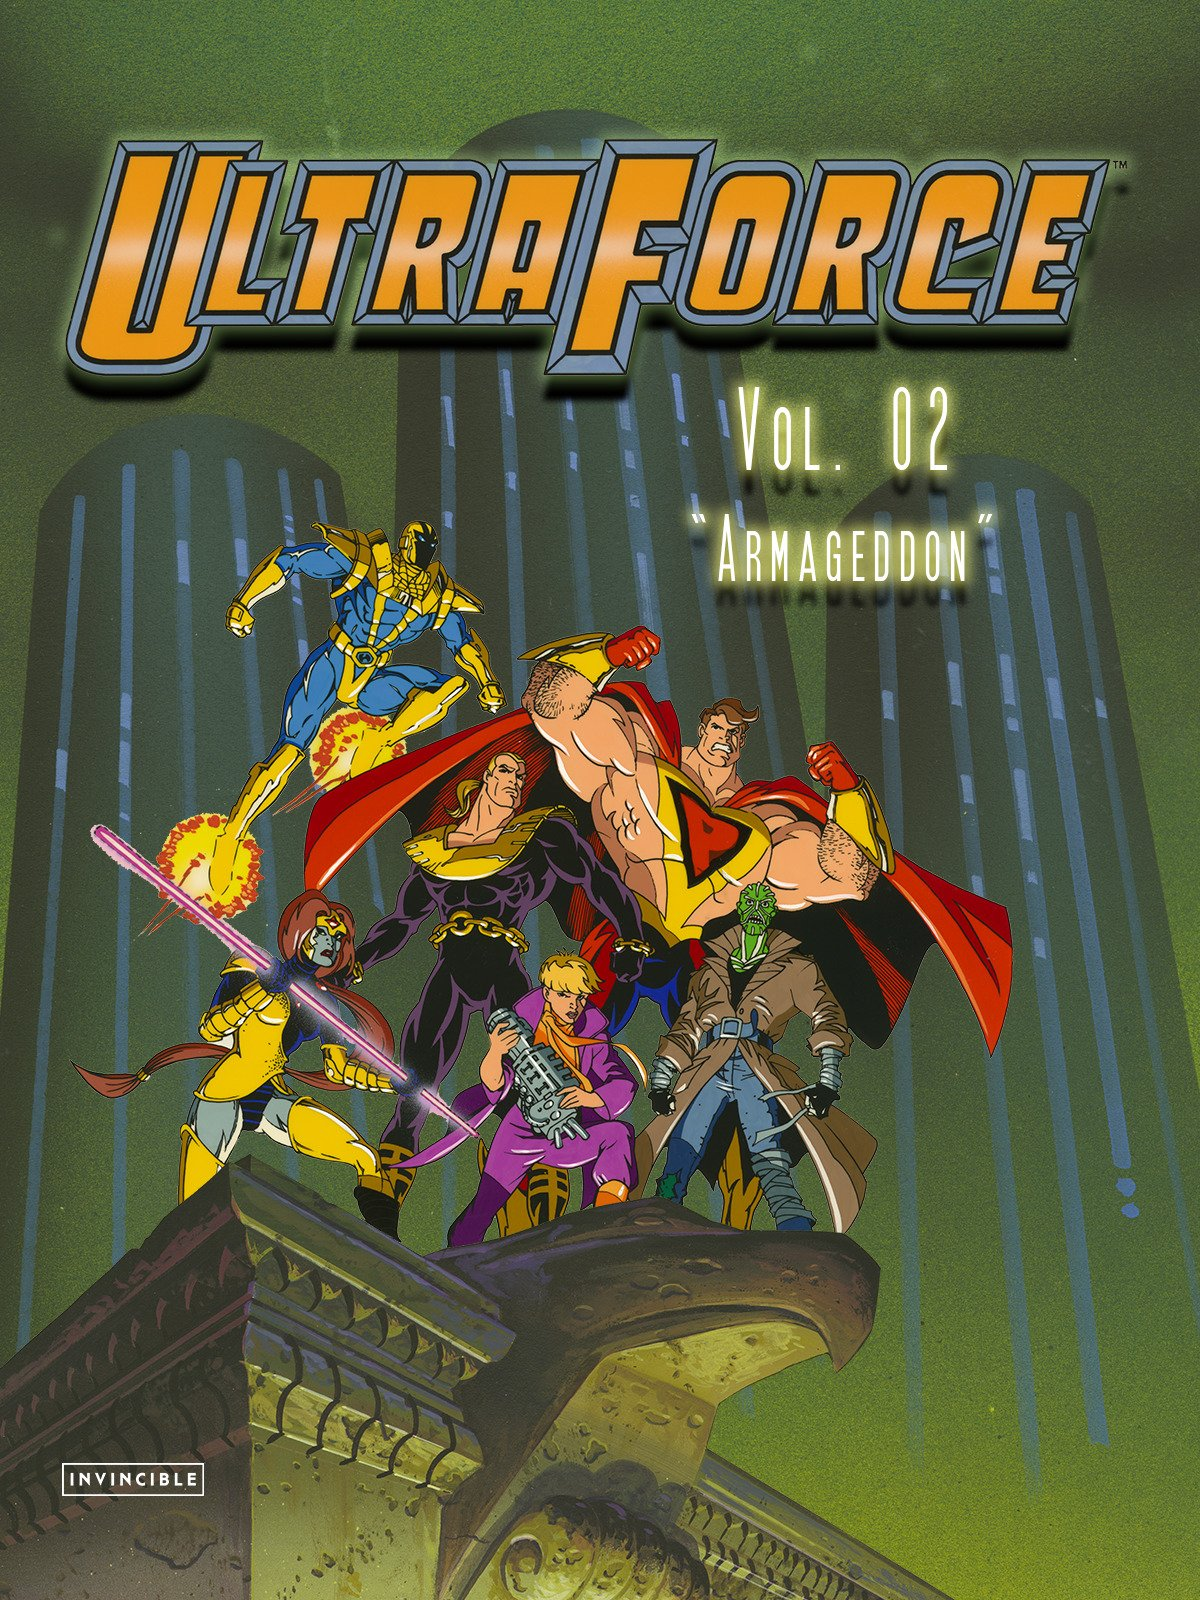 "Ultraforce Vol. 02""Armageddon"""